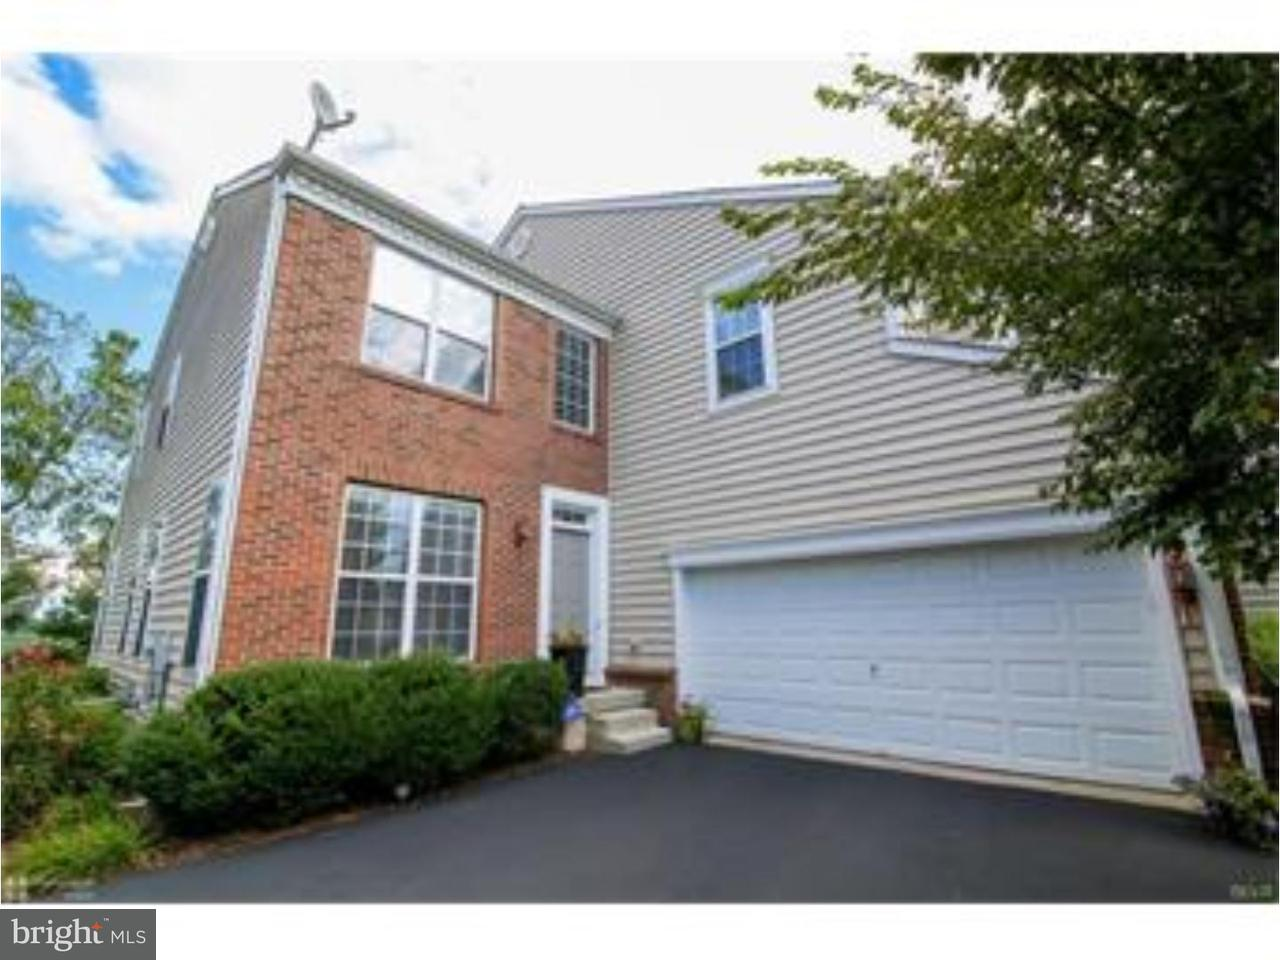 Townhouse for Sale at 1853 MAJESTIC Drive Orefield, Pennsylvania 18104 United States